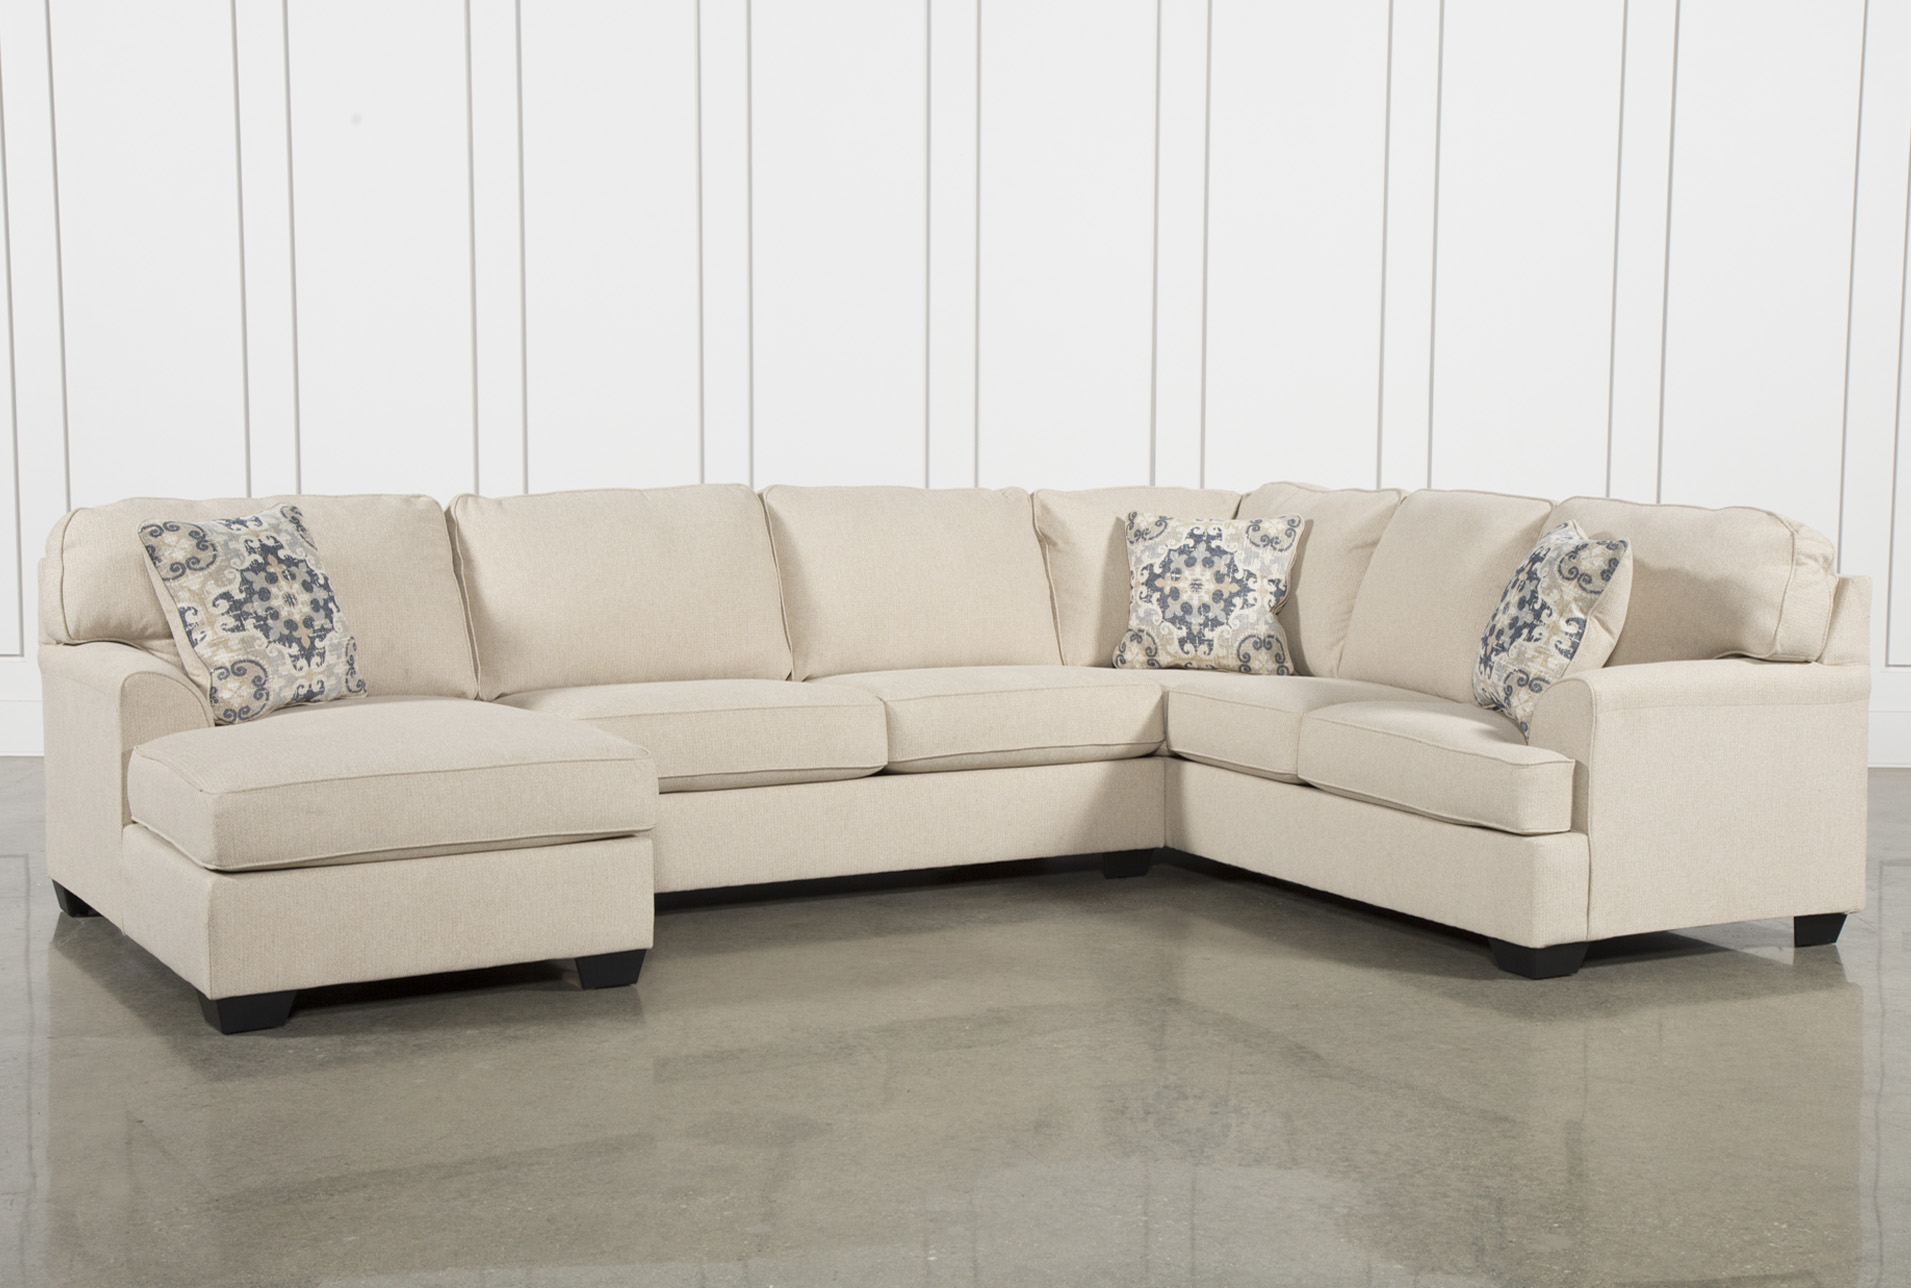 Good Display Product Reviews For KIT MALBRY POINT 3 PIECE SECTIONAL W/LAF CHAISE